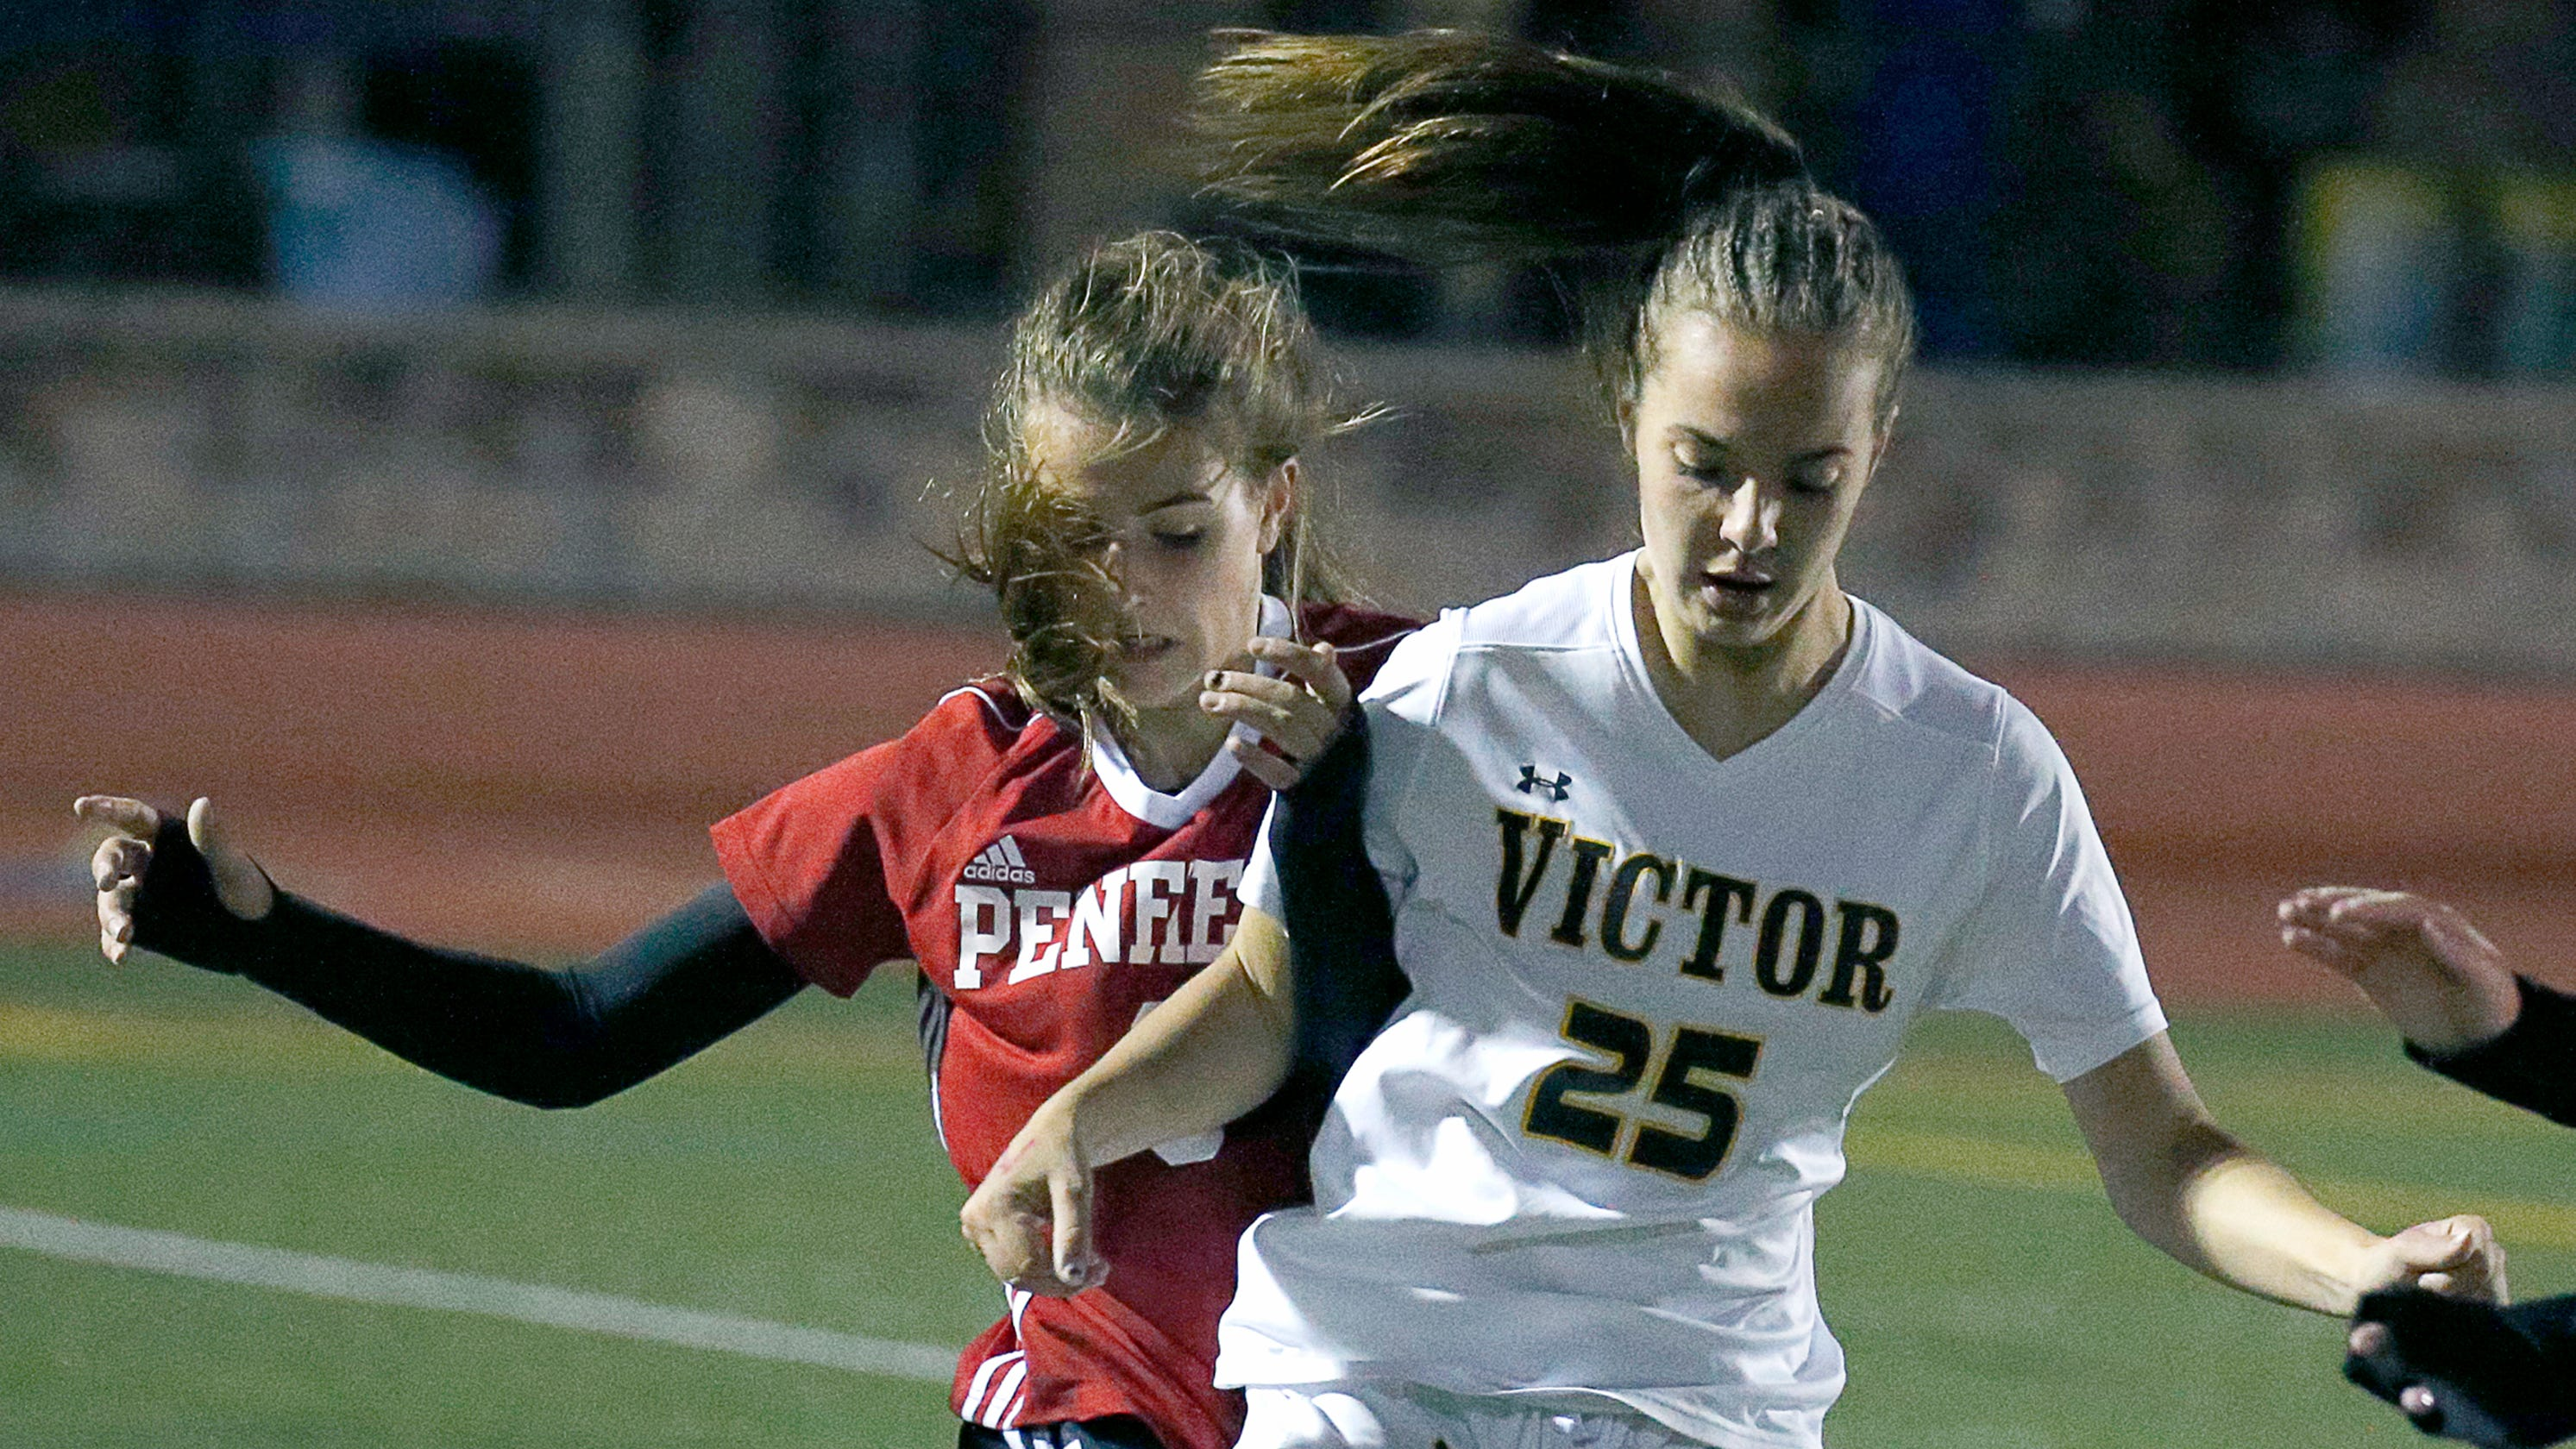 abfe3b9042c0 Girls soccer  Penfield 4 - Victor 3